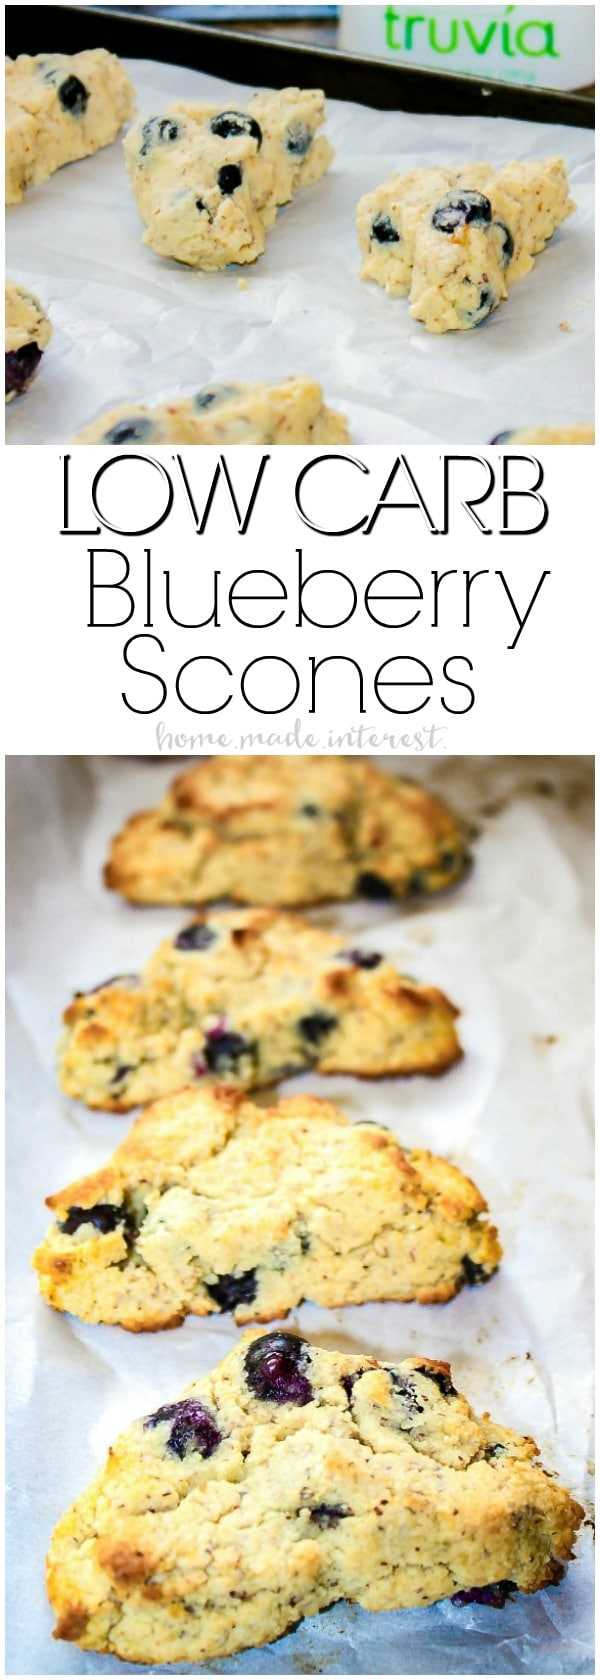 Low Carb Blueberry Scones | These low carb blueberry scones are a low carb baking recipe that makes an amazing low carb snack! Satisfy your sweet tooth with low carb blueberry scones that are only 5 net carbs! If you are on a low carb diet this is a low carb recipe you don't want to miss.